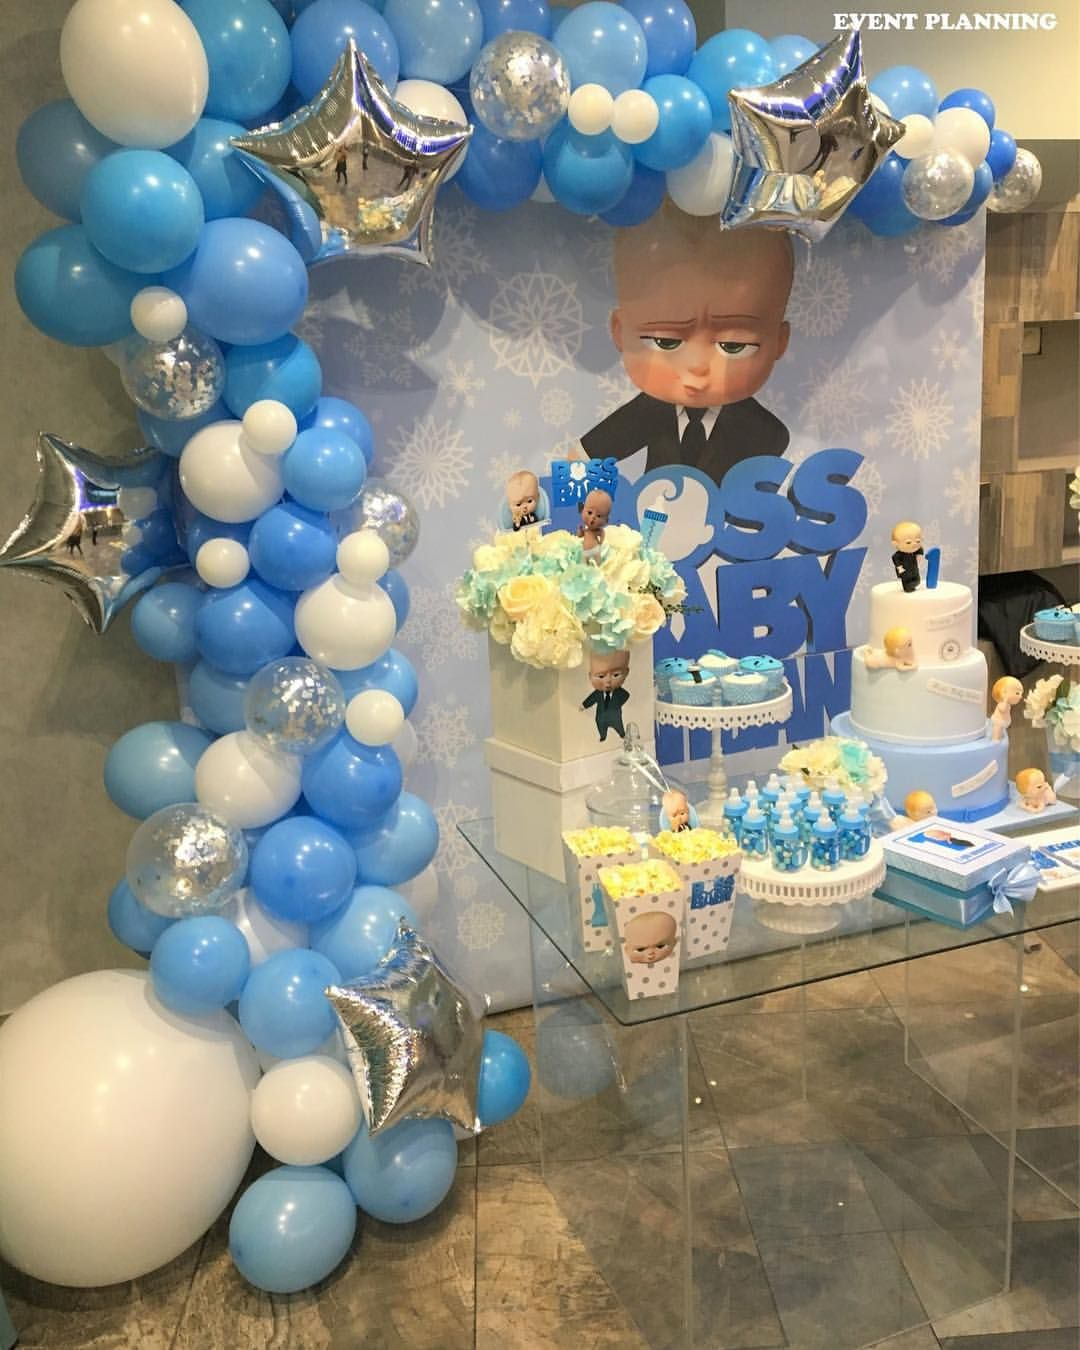 Boss Baby Party Bossbabyparty Bossbabypartyideas